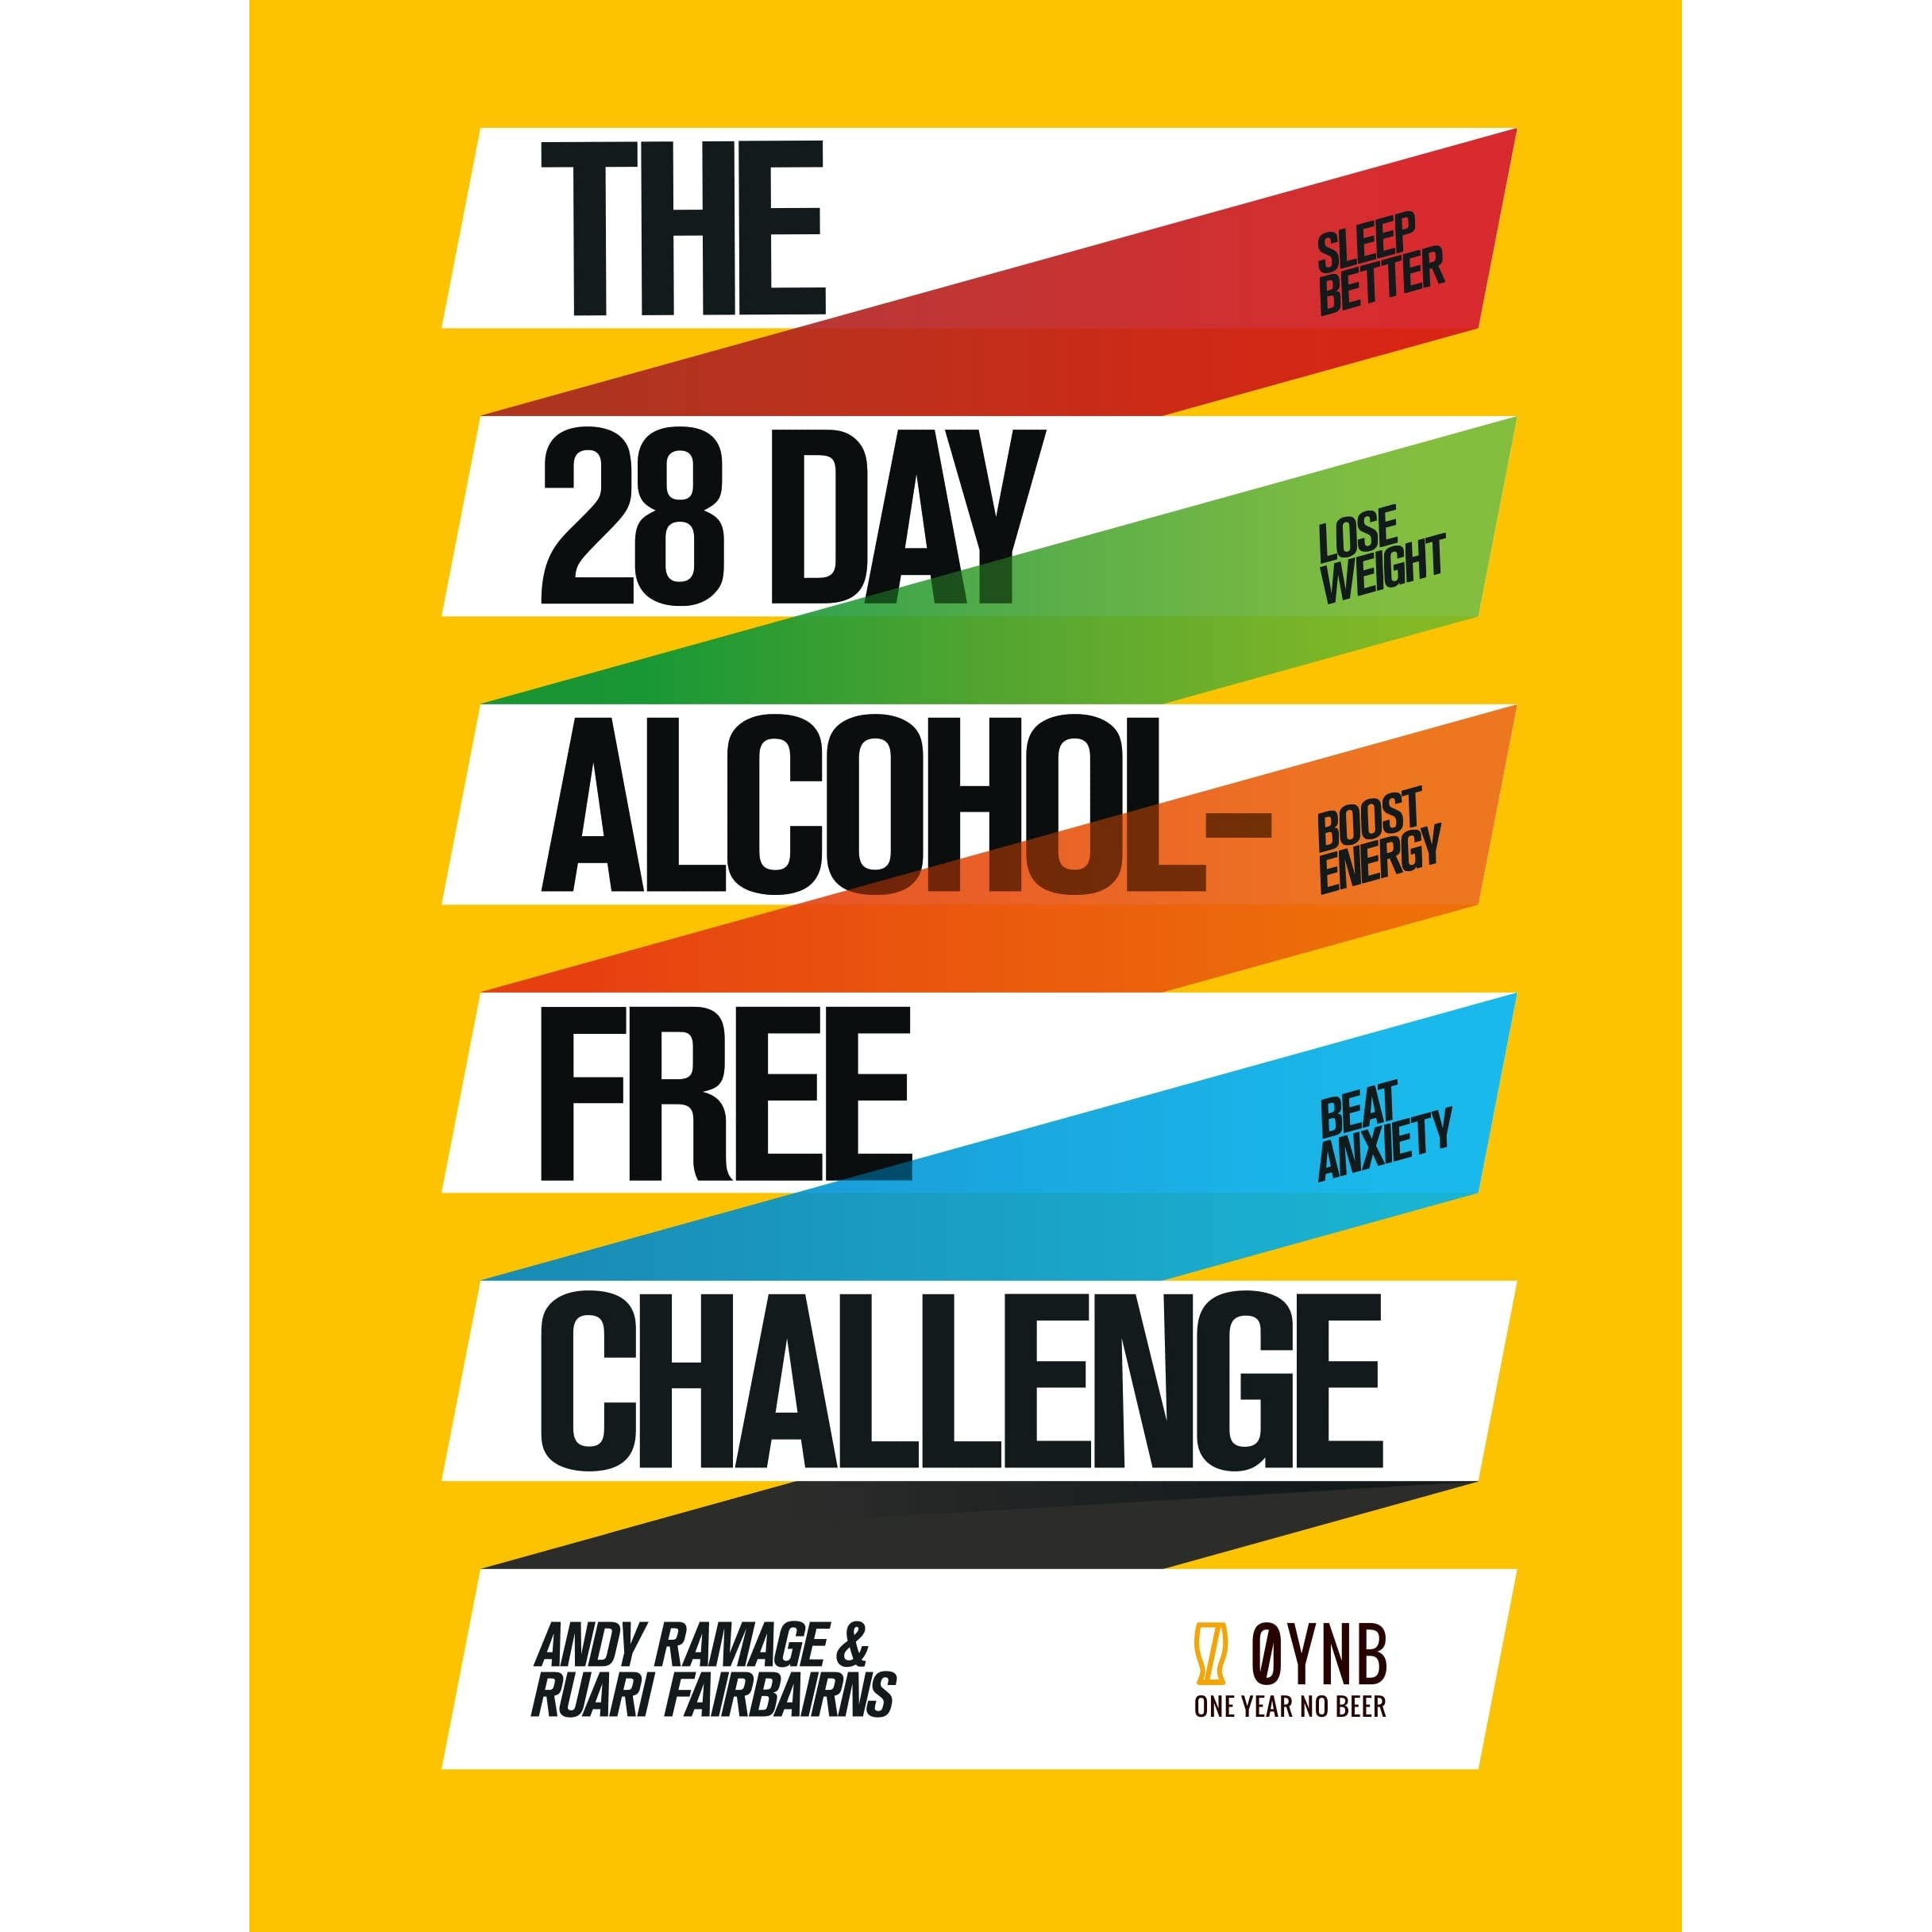 The 28 Day Alcohol-Free Challenge: Sleep Better, Lose Weight